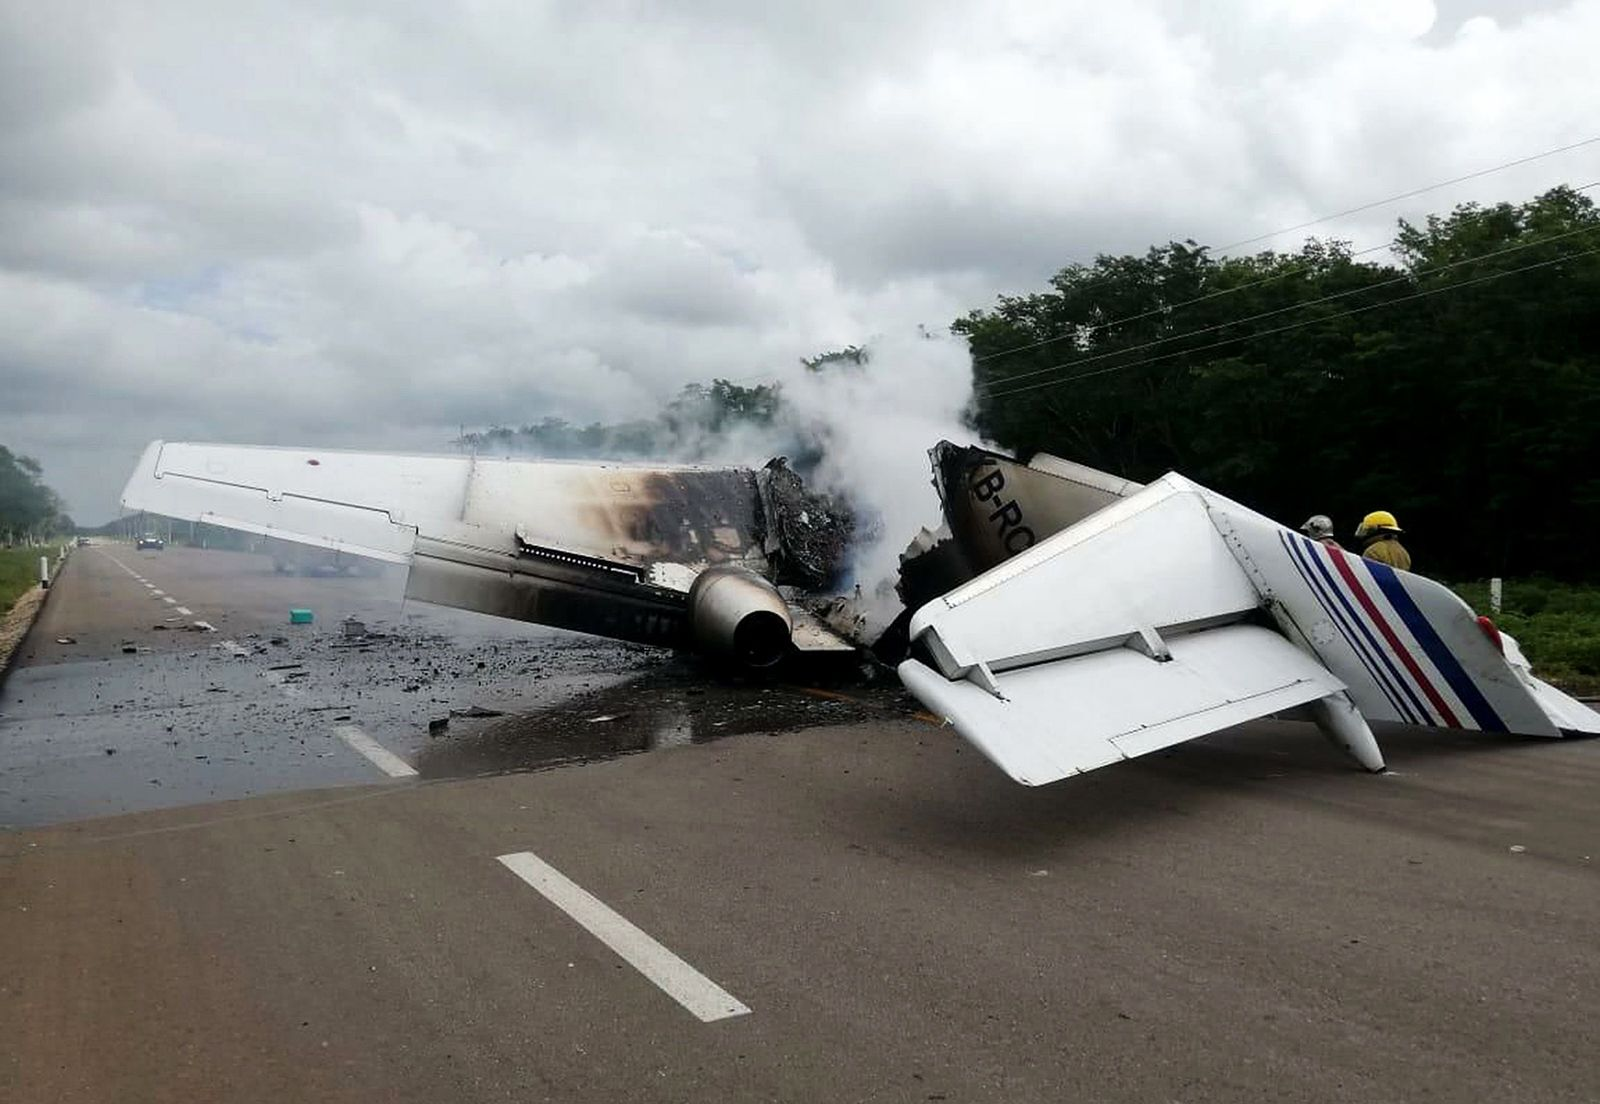 Alleged drug trafficking plane catches fire on highway in southeastern Mexico, Felipe Carrilo Puerto - 05 Jul 2020